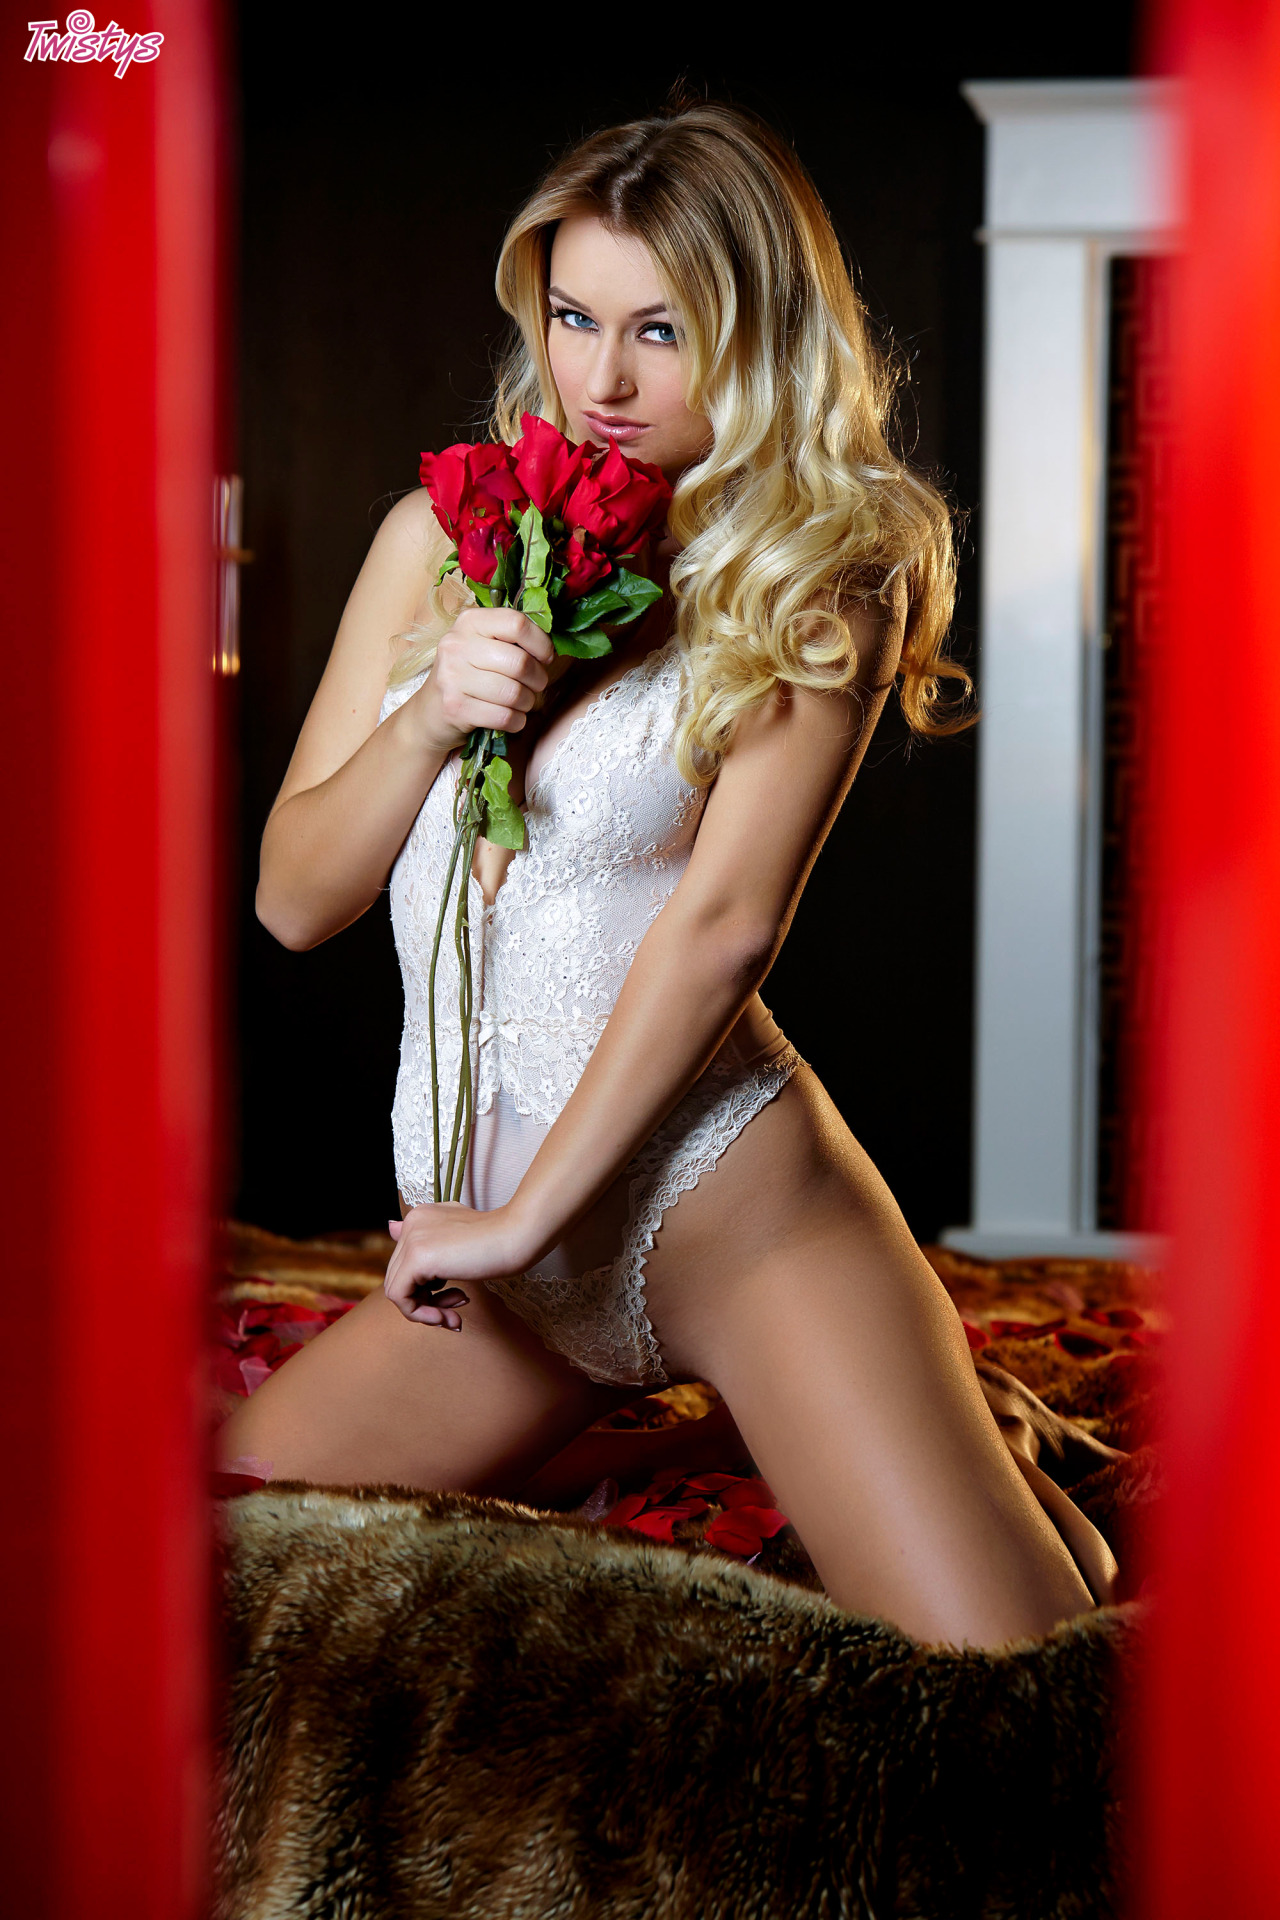 Happy Valentine's Day Natalia Starr Shot For Twistys 8